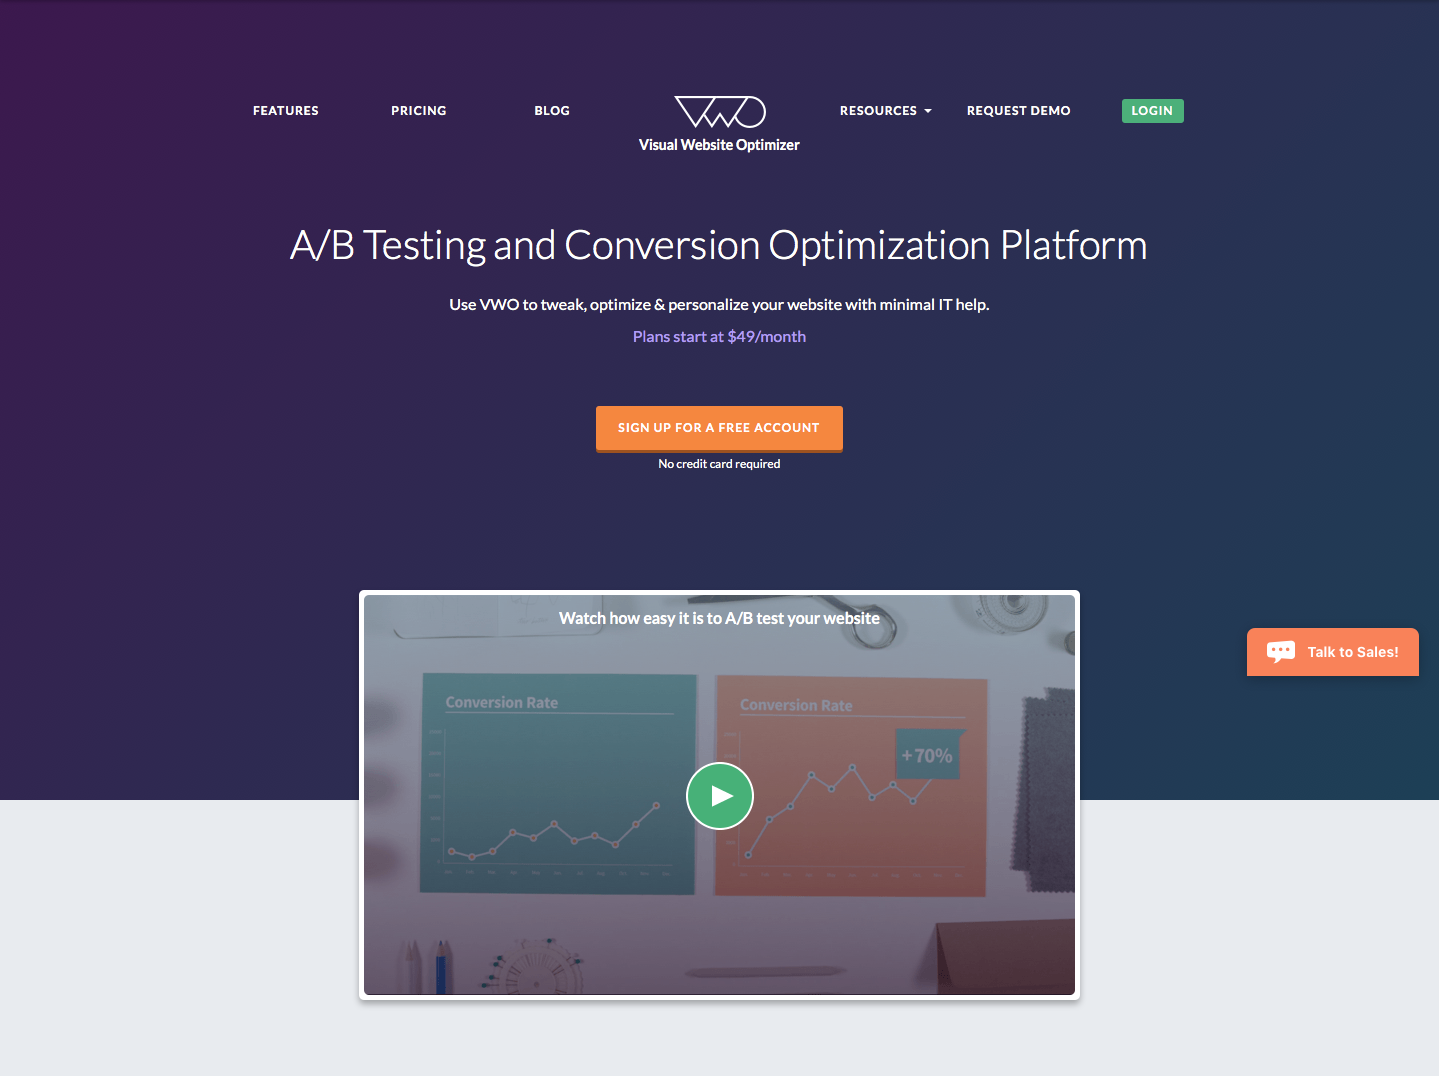 Landing Page Examples from Top Tech Companies   Visual Website Optimizer Application